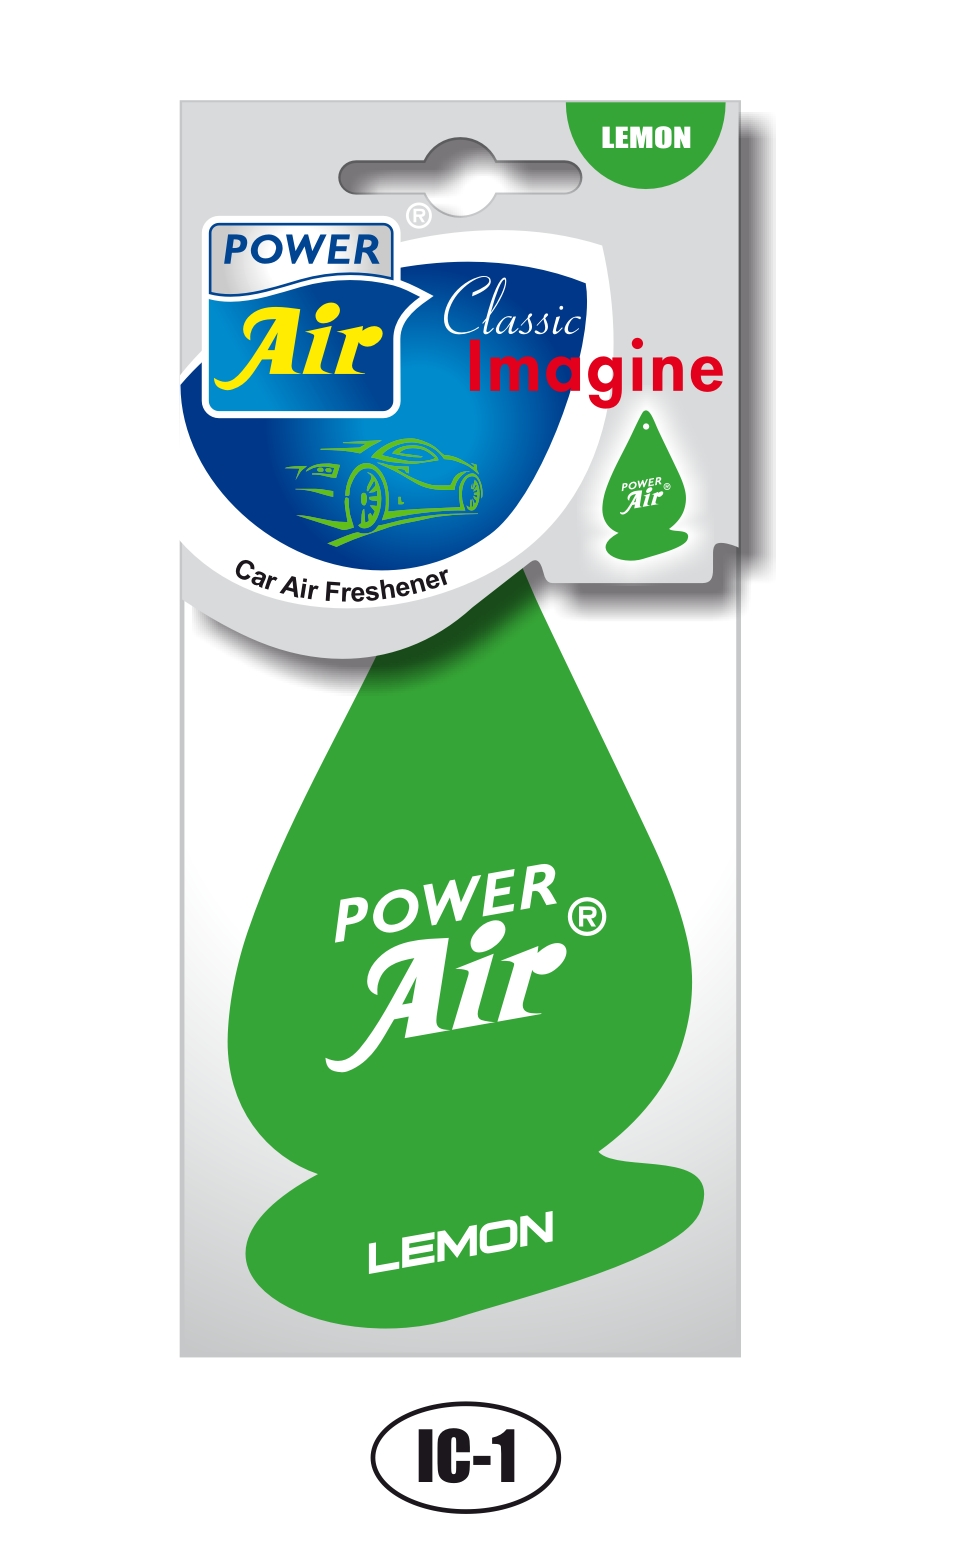 Power Air Imagine Clasic osviežovač vzduchu Lemon